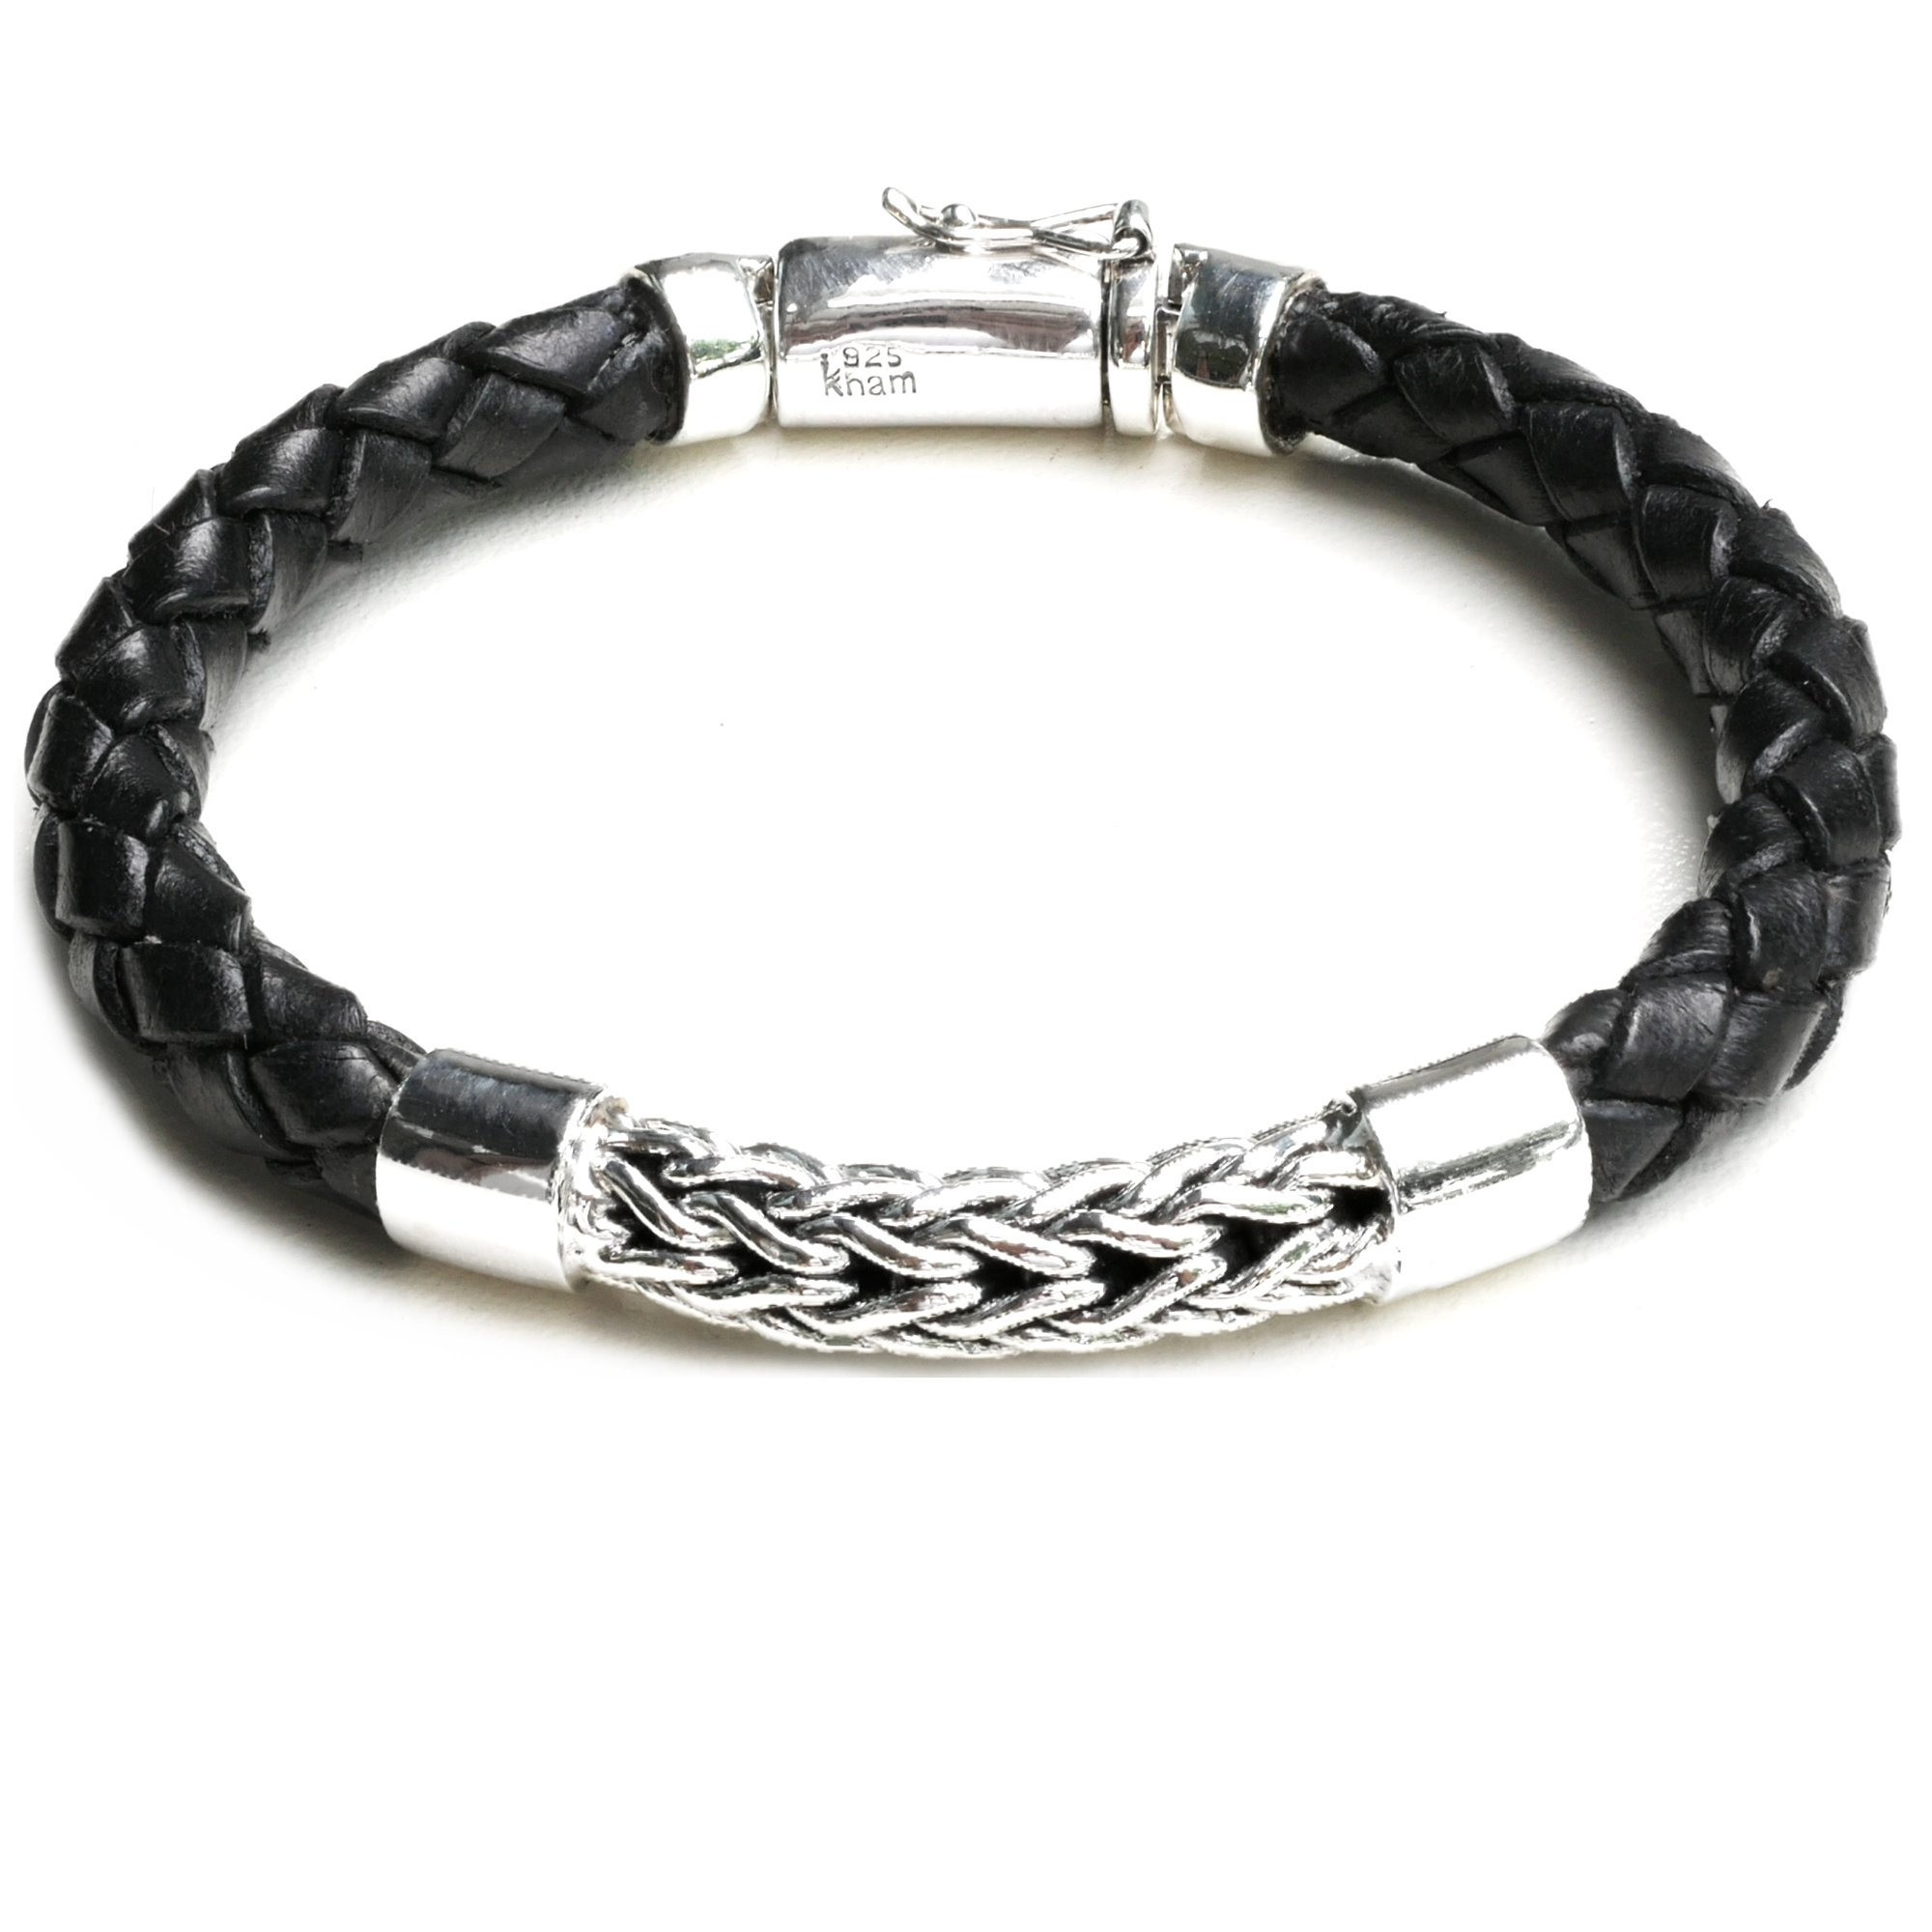 Kham 6MM Hand Woven 925 Sterling Silver and Braided Bali Style Genuine Black Leather Bracelet for Men Women Unisex (8.5)